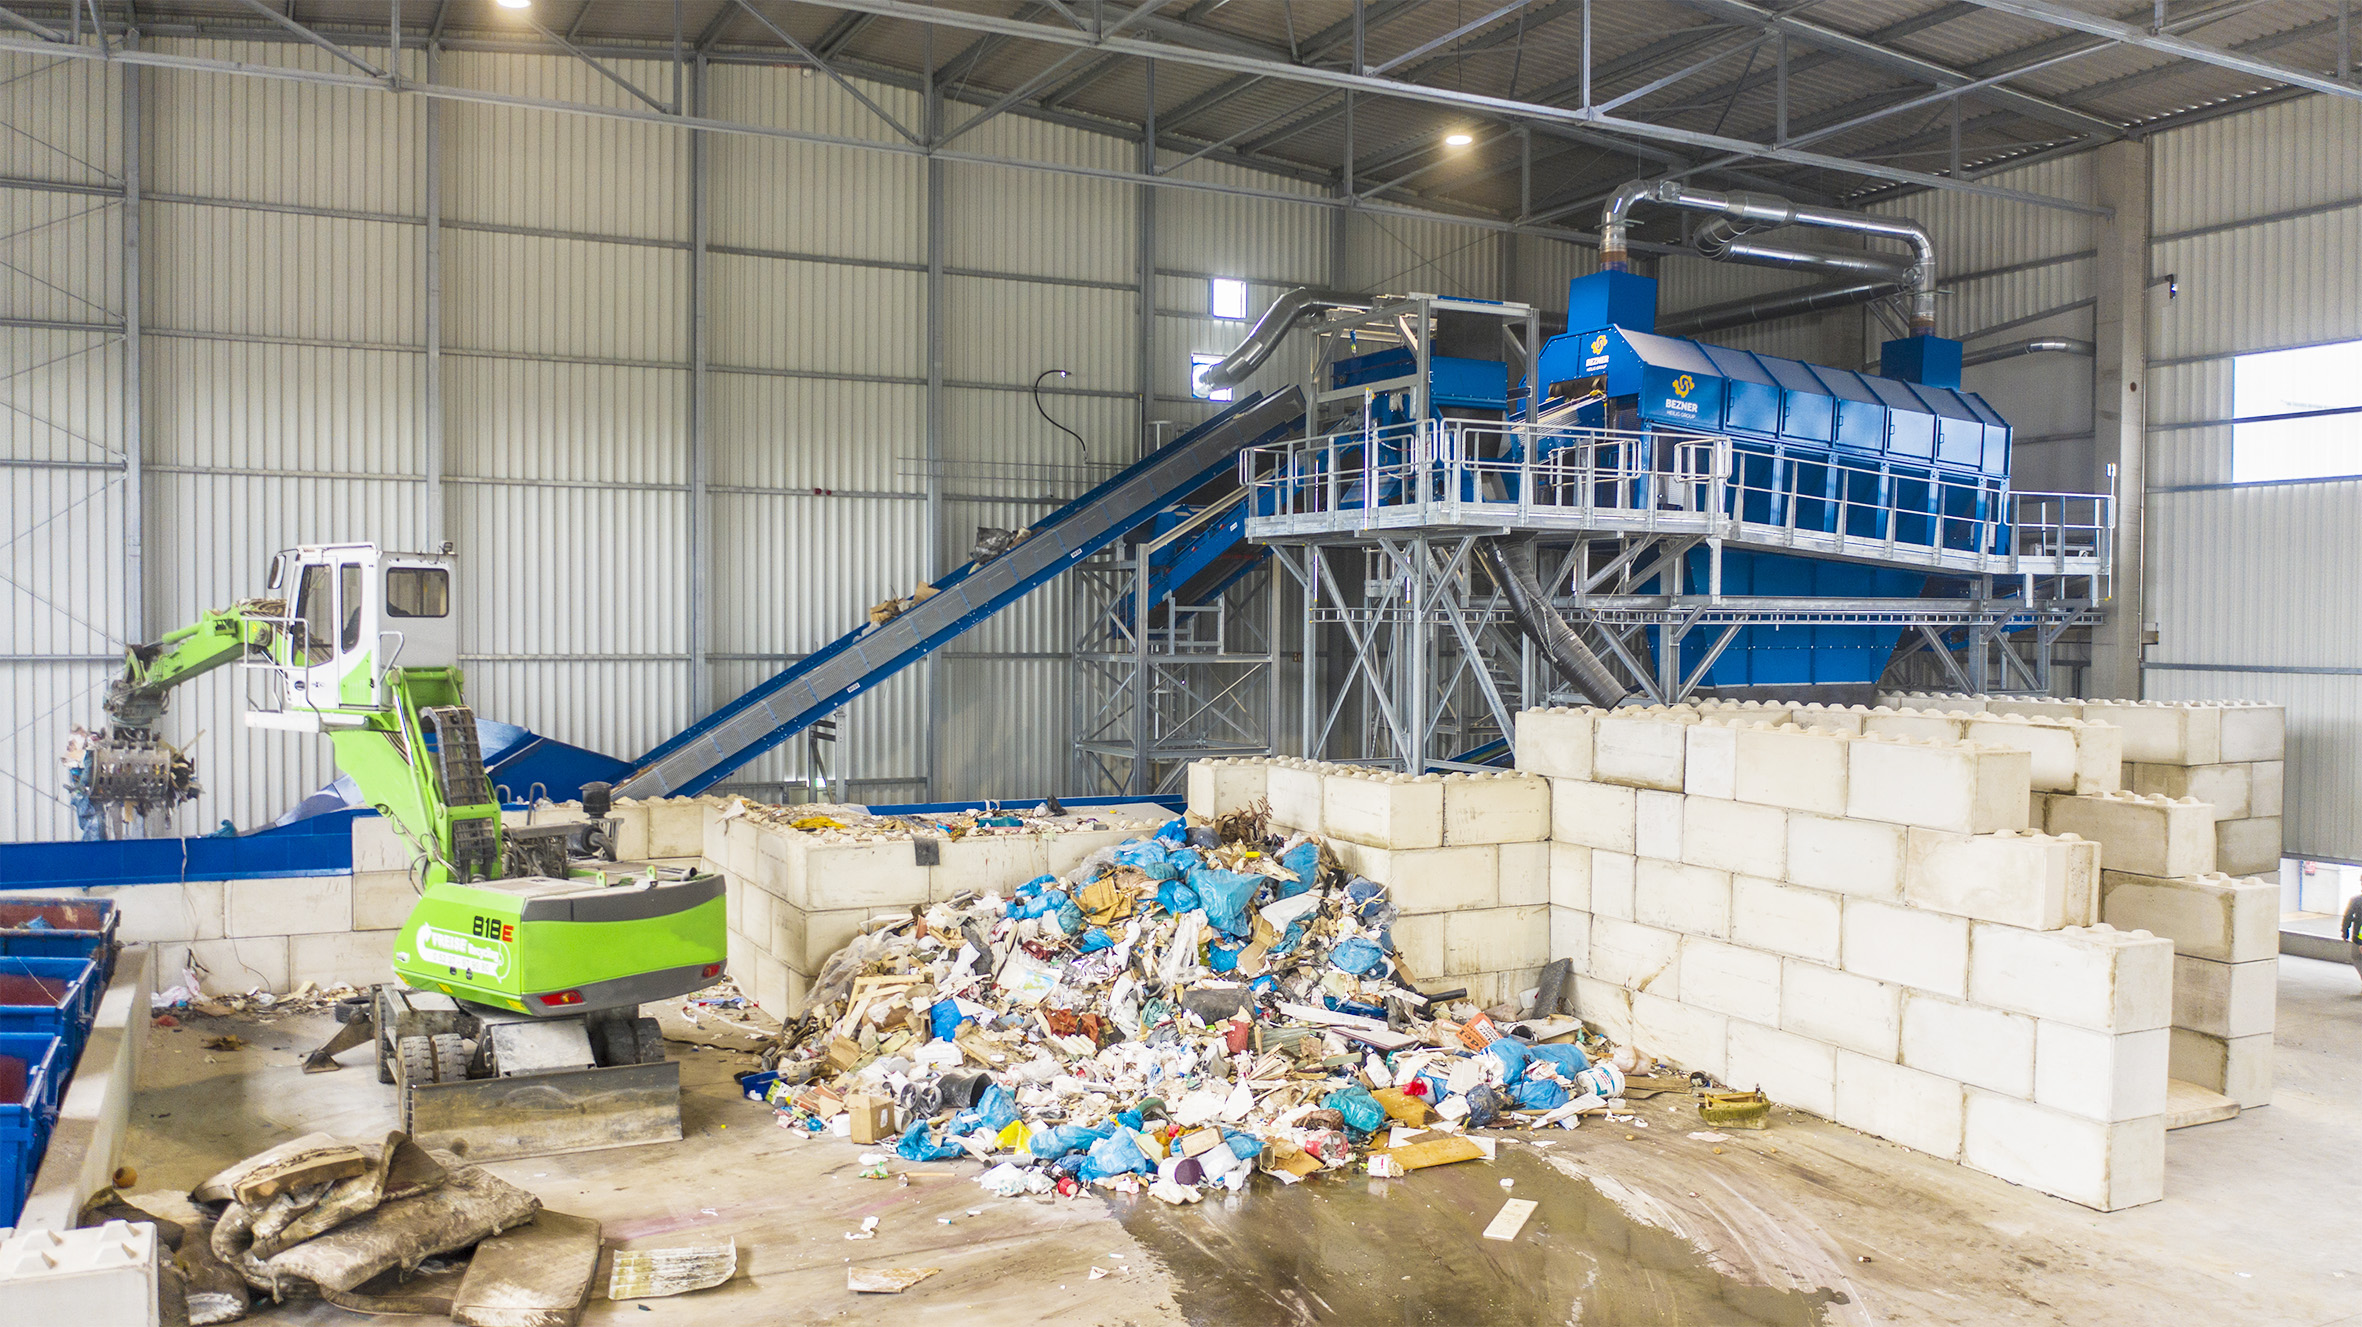 Commercial waste sorting plant